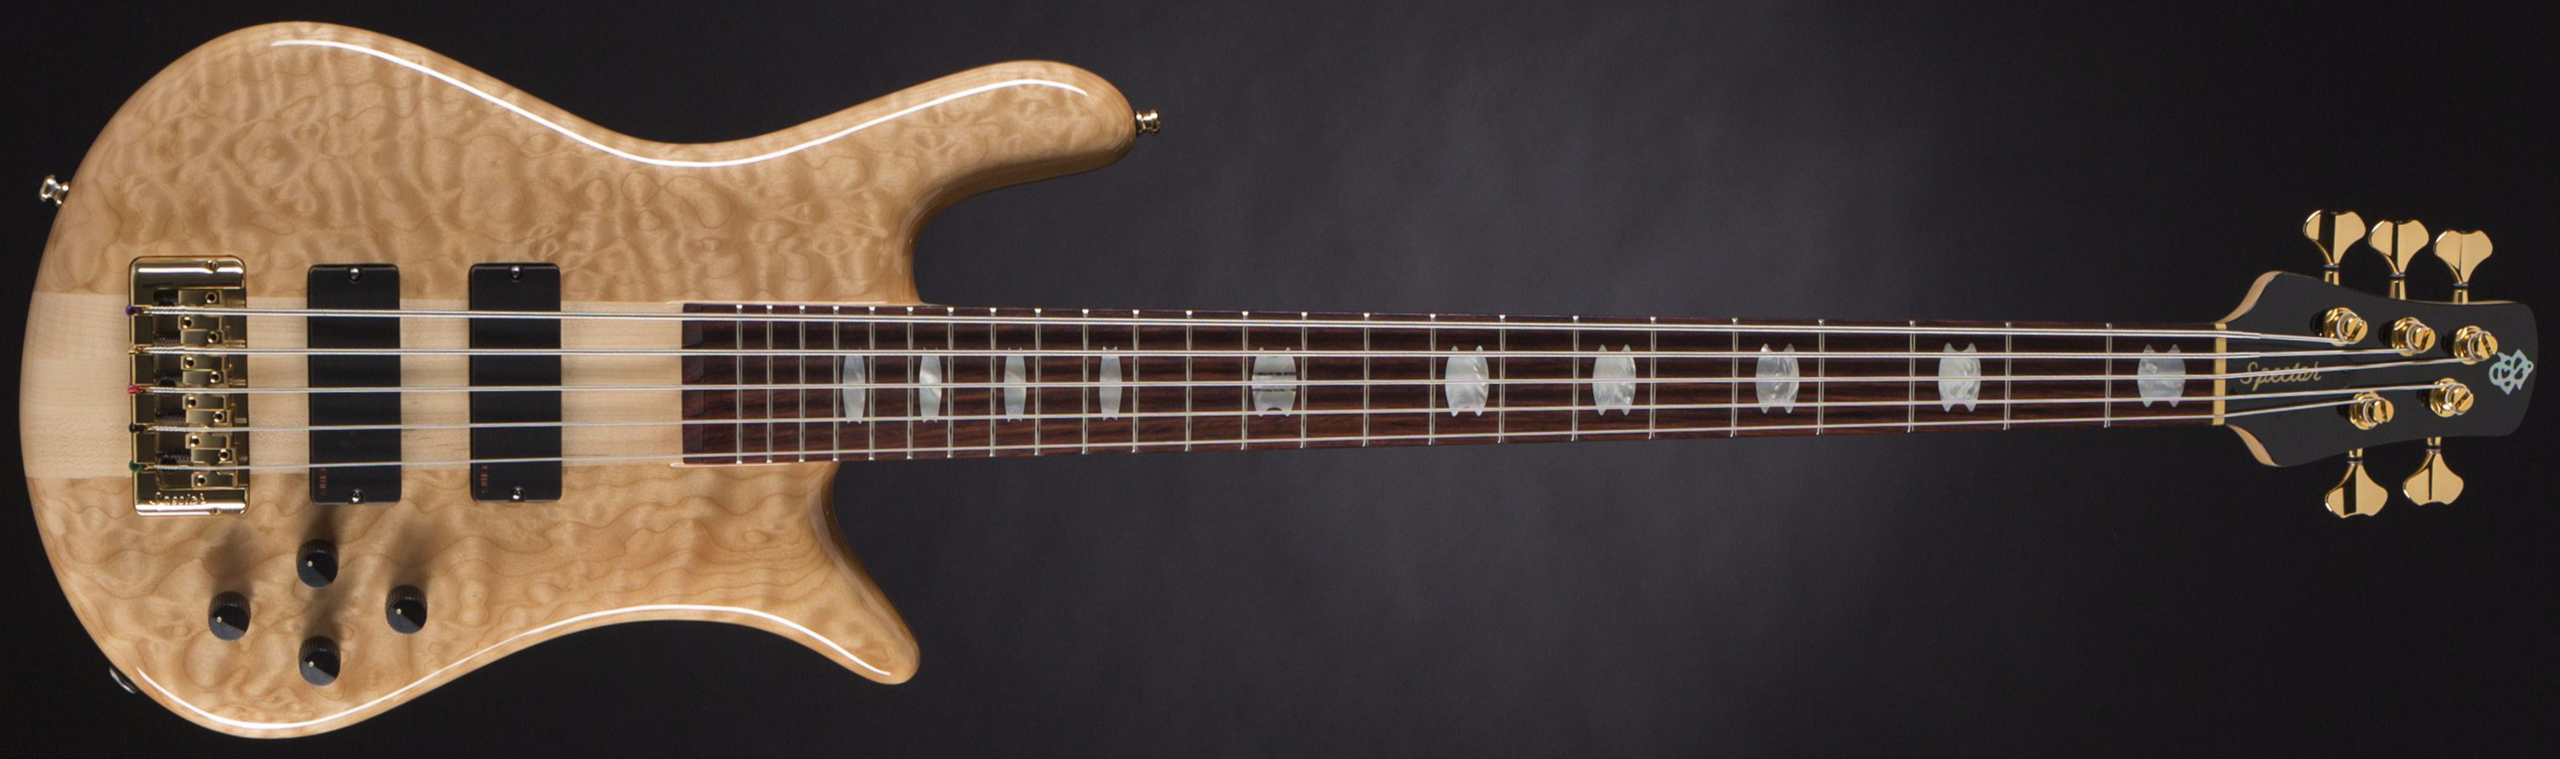 SPECTOR Euro 5 LX-TW Natural Stain Gloss